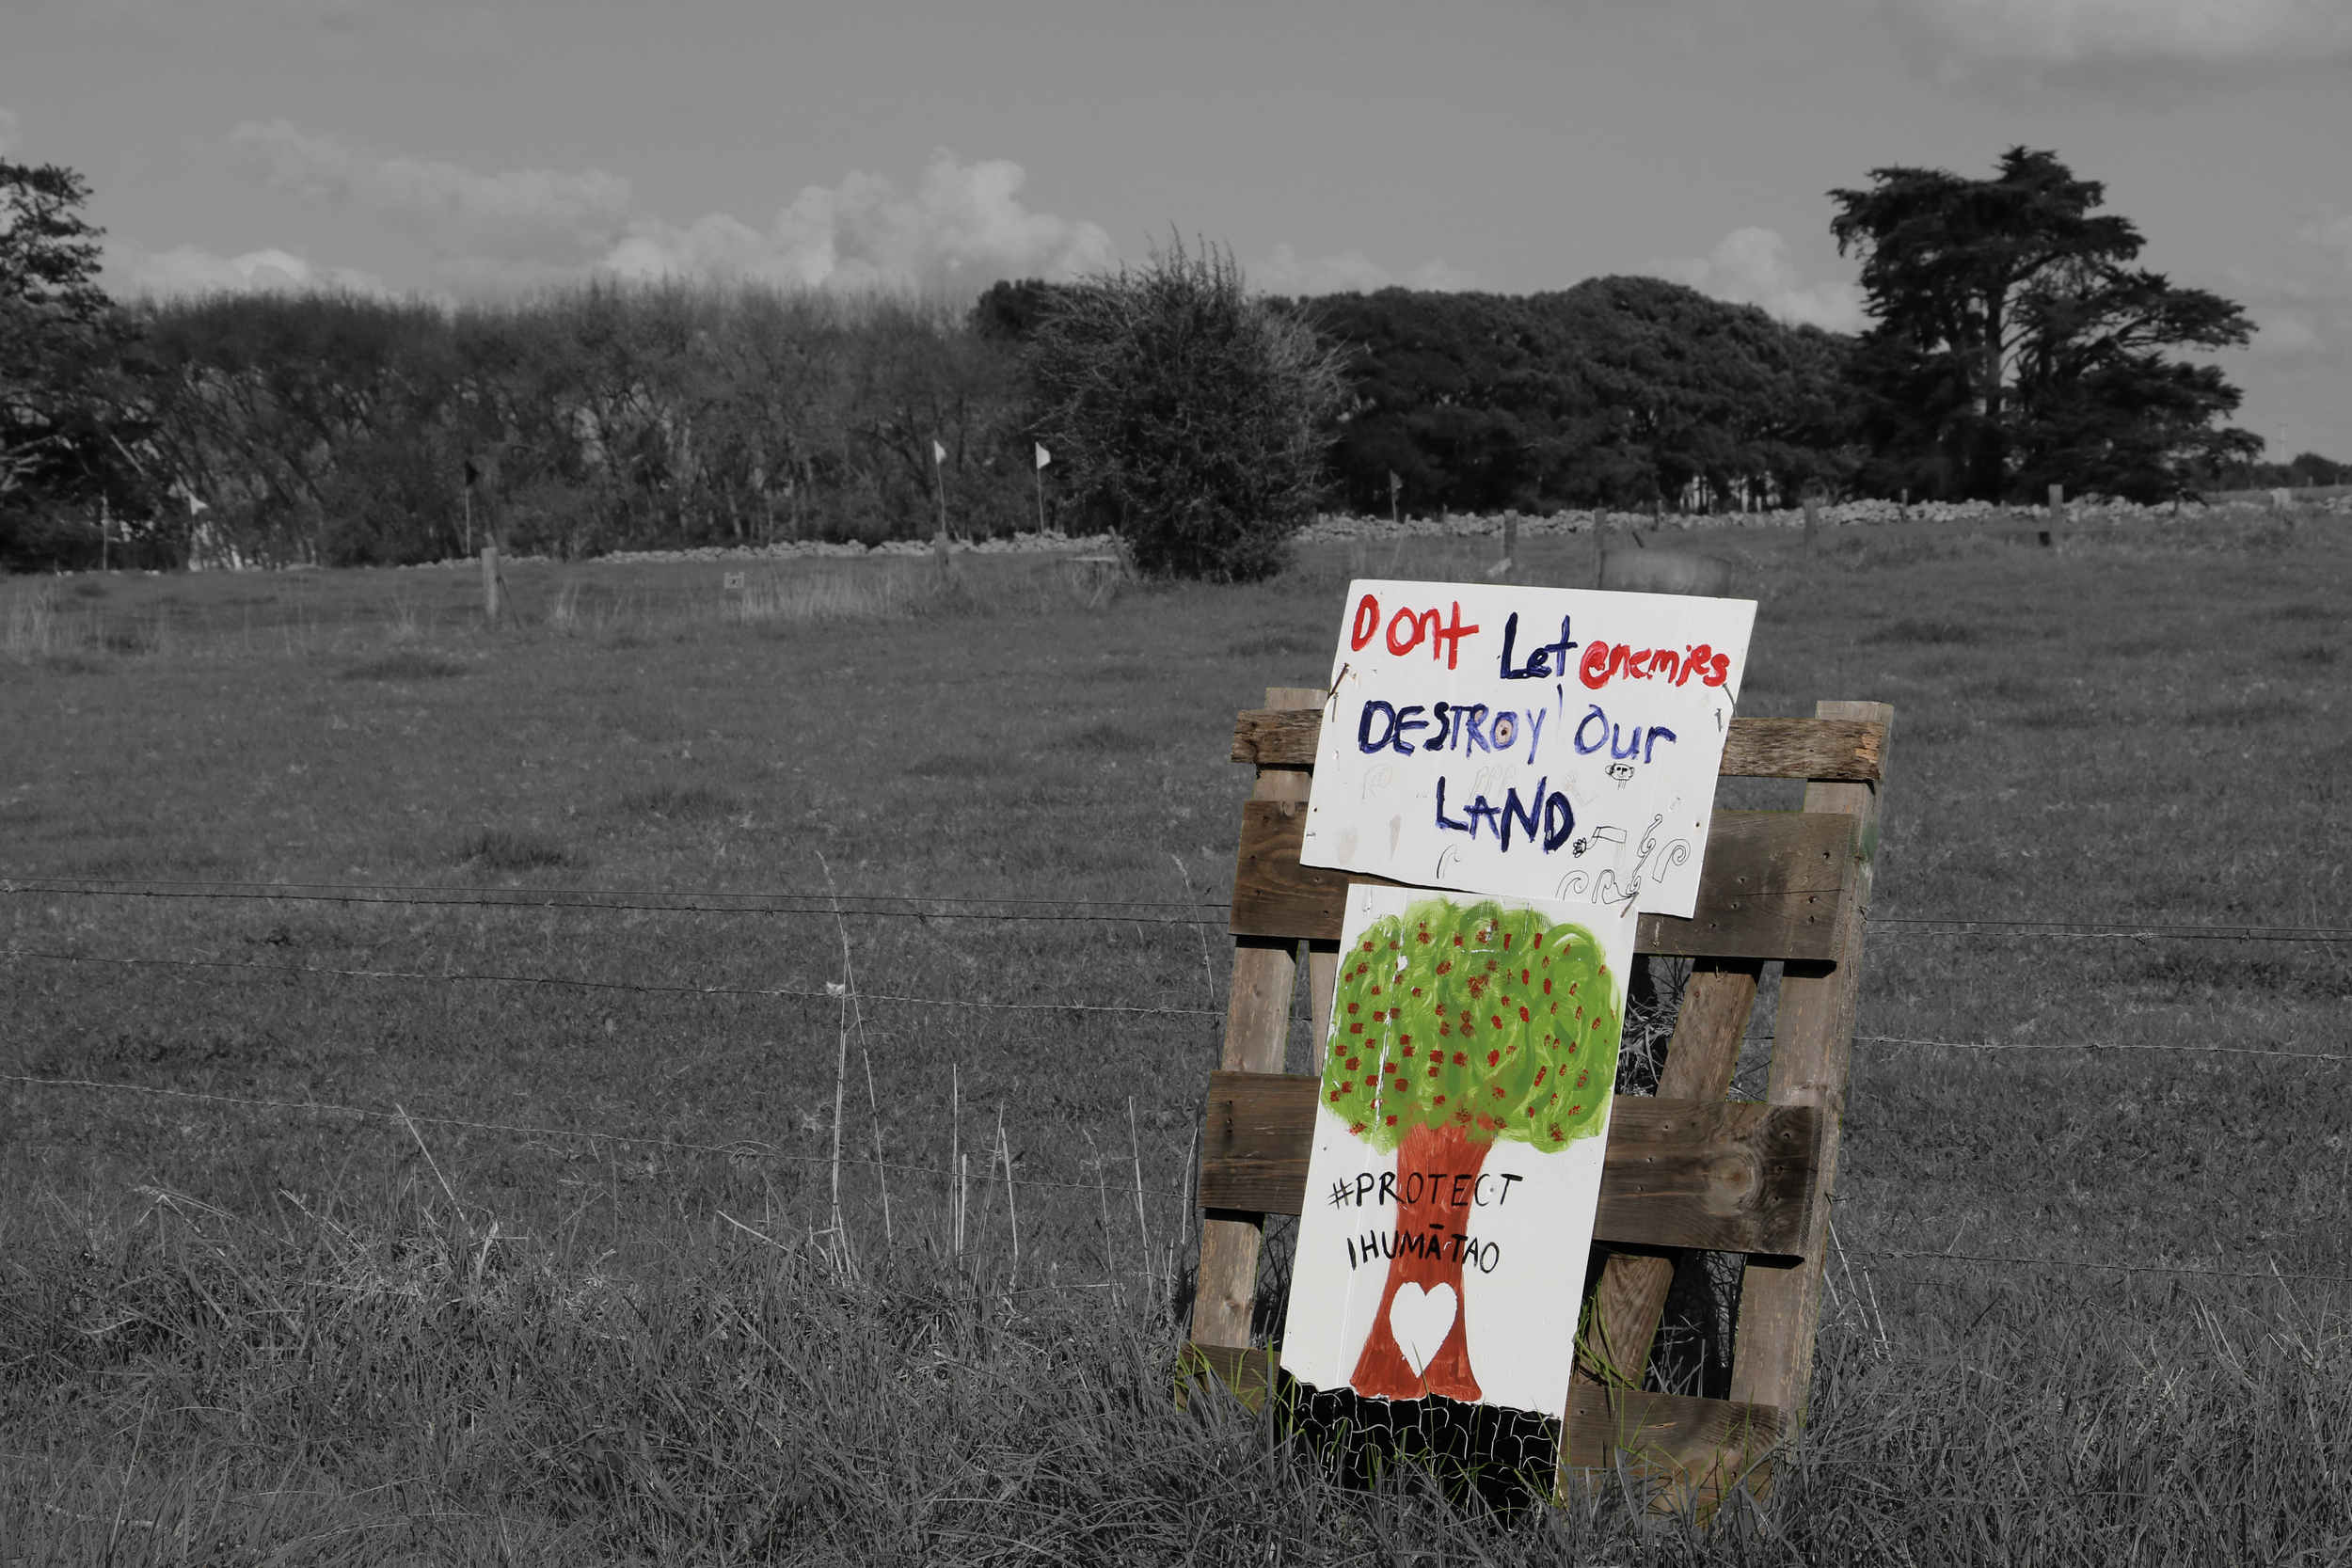 Save Our Unique Landscapes (SOUL) say they are protecting the land in Ihumaatao, rather than protesting